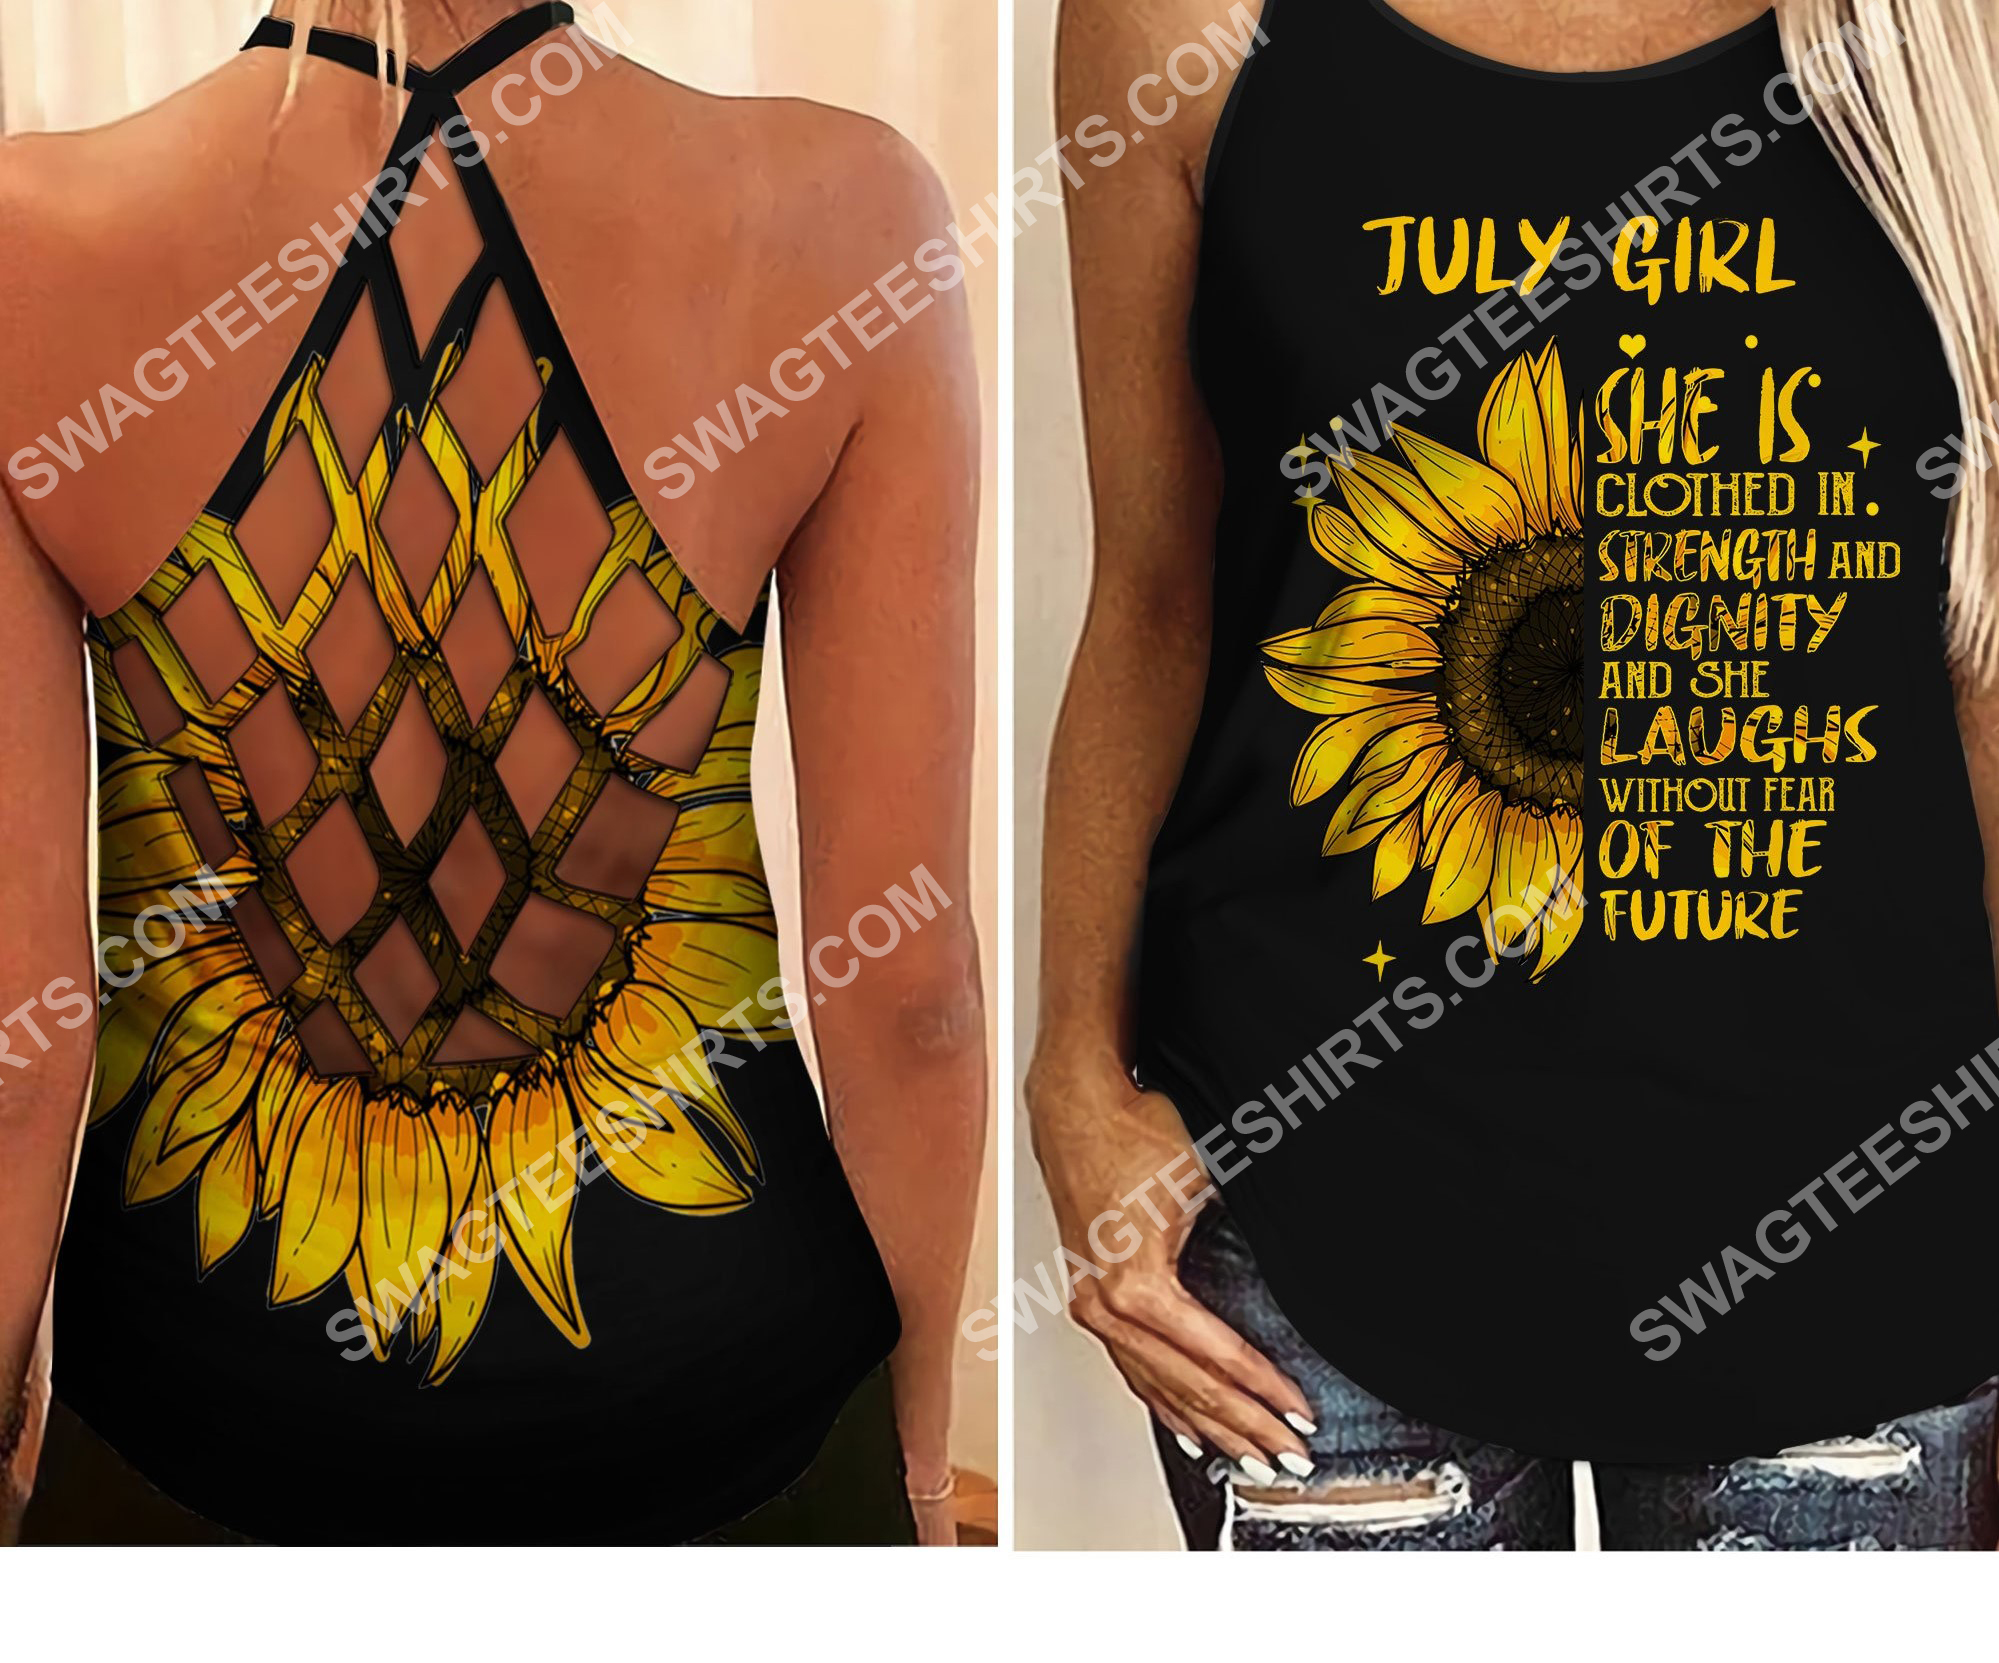 sunflower july girl she is clothed with strength and dignity criss-cross tank top 2 - Copy (2)